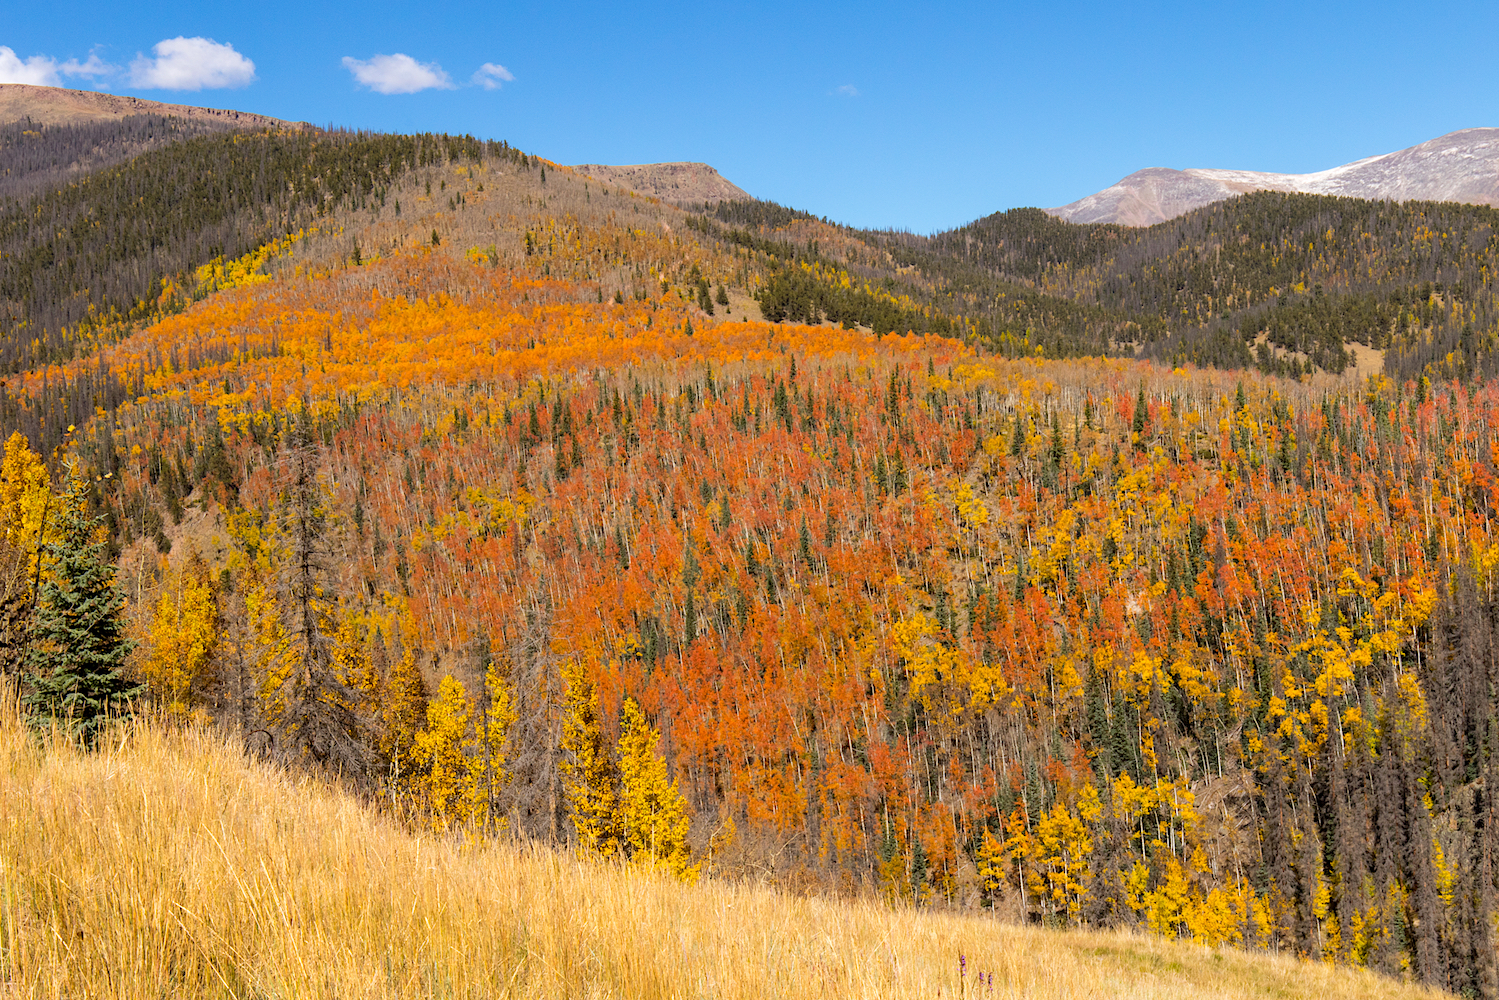 View of Fall Colors from Last Chance Mine, Image # 4109